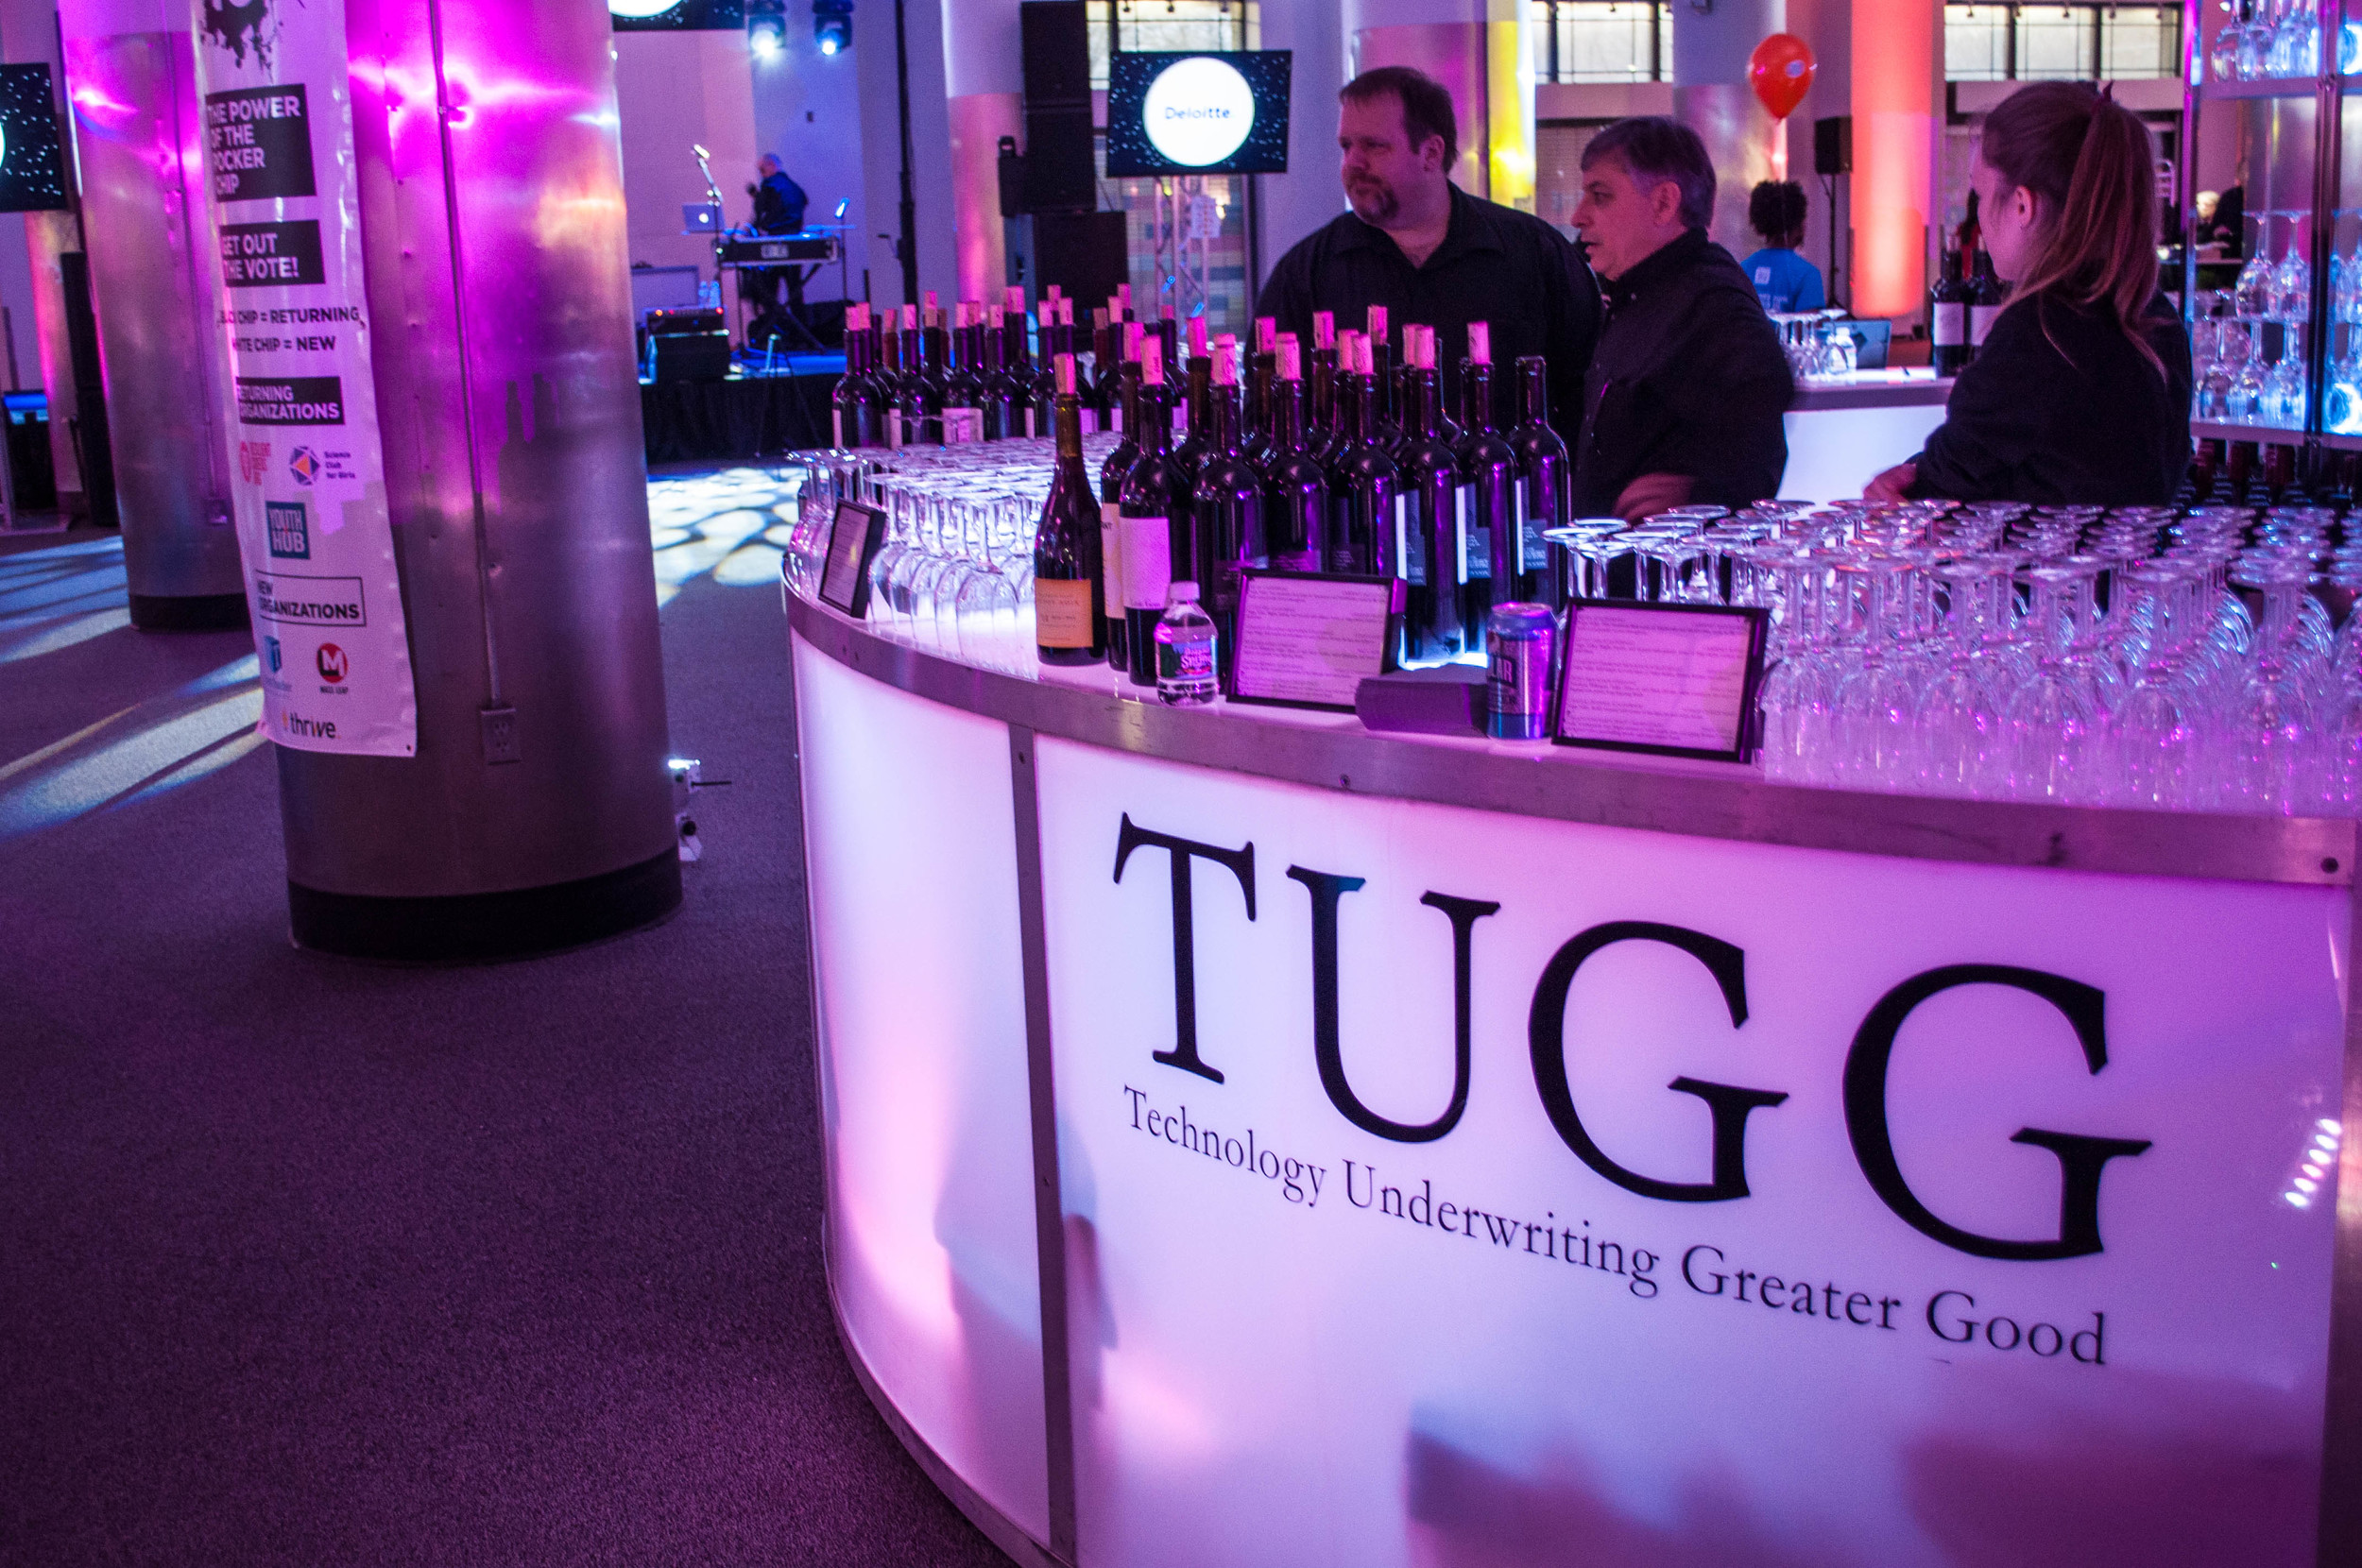 20160407_TUGG_WineAndTequilaAll_009.jpg